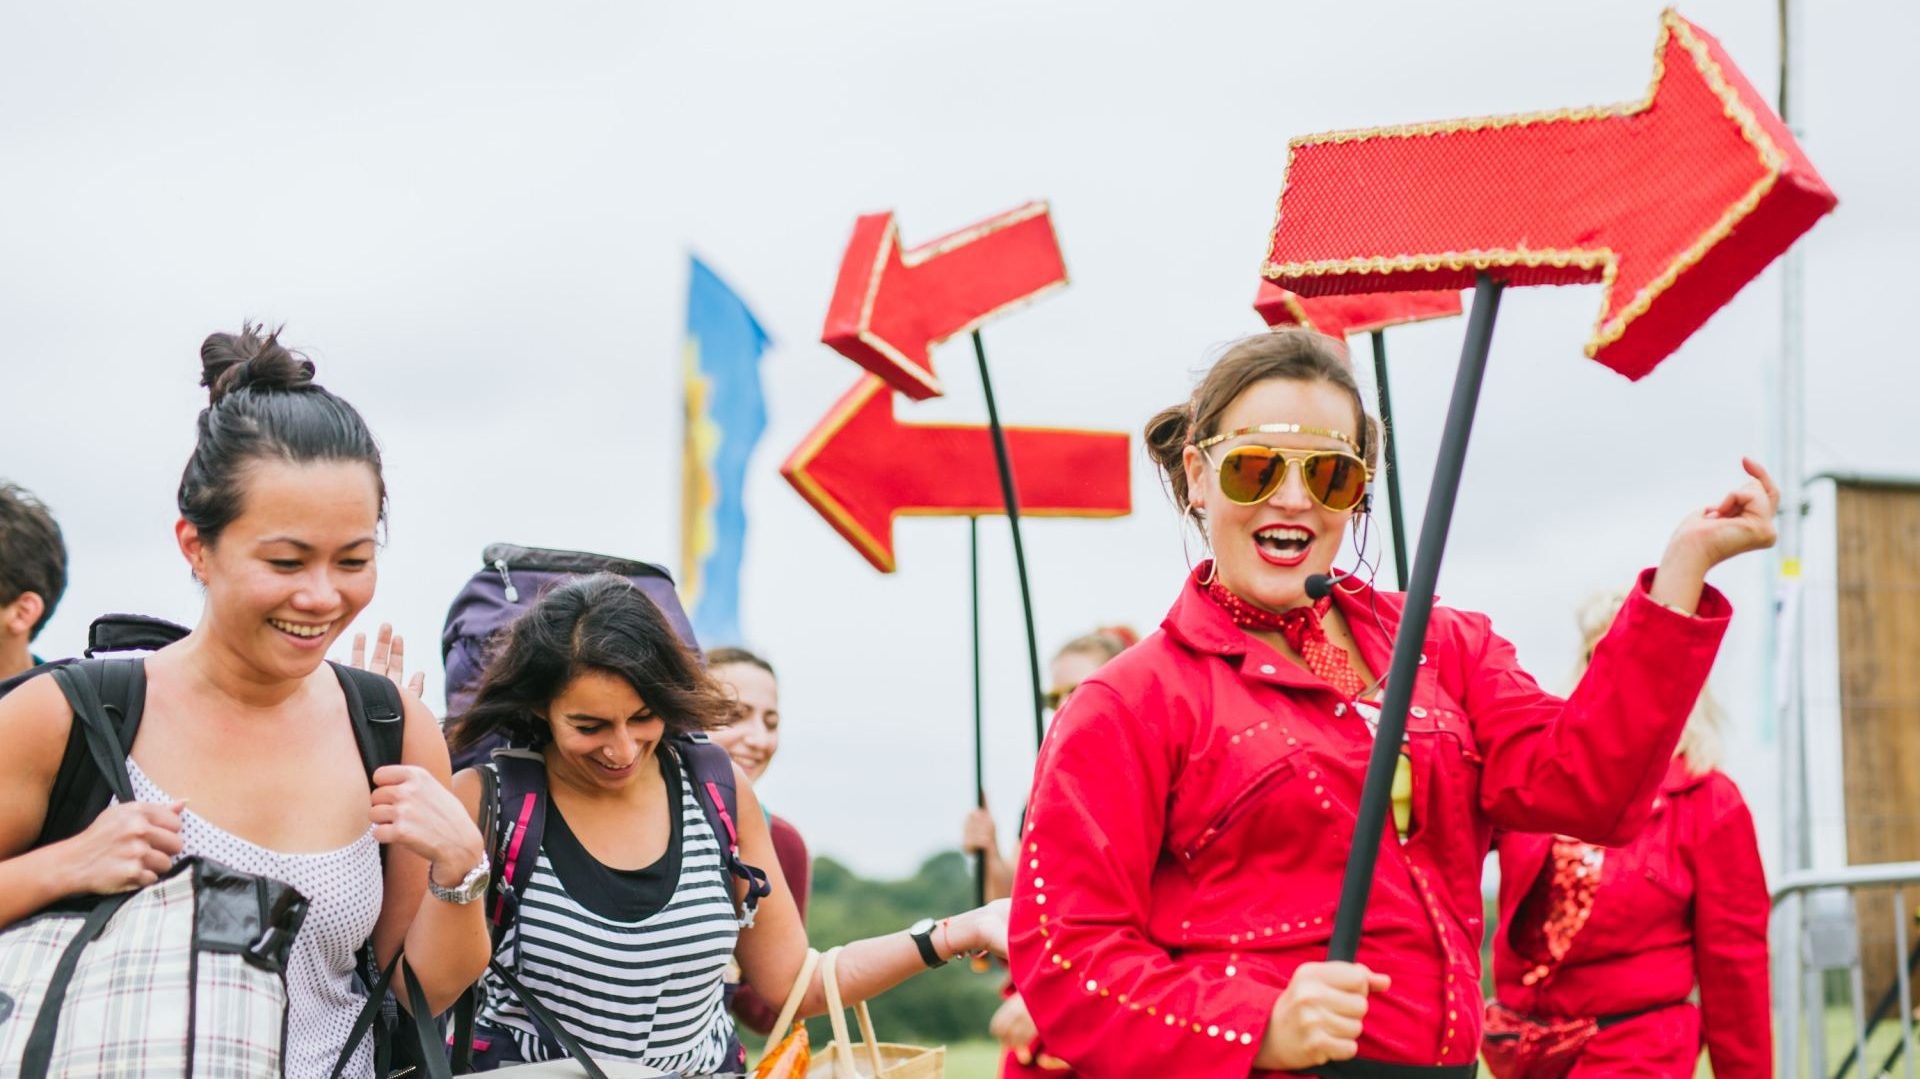 Arriving at Boomtown Festival, which festival bag to bring?